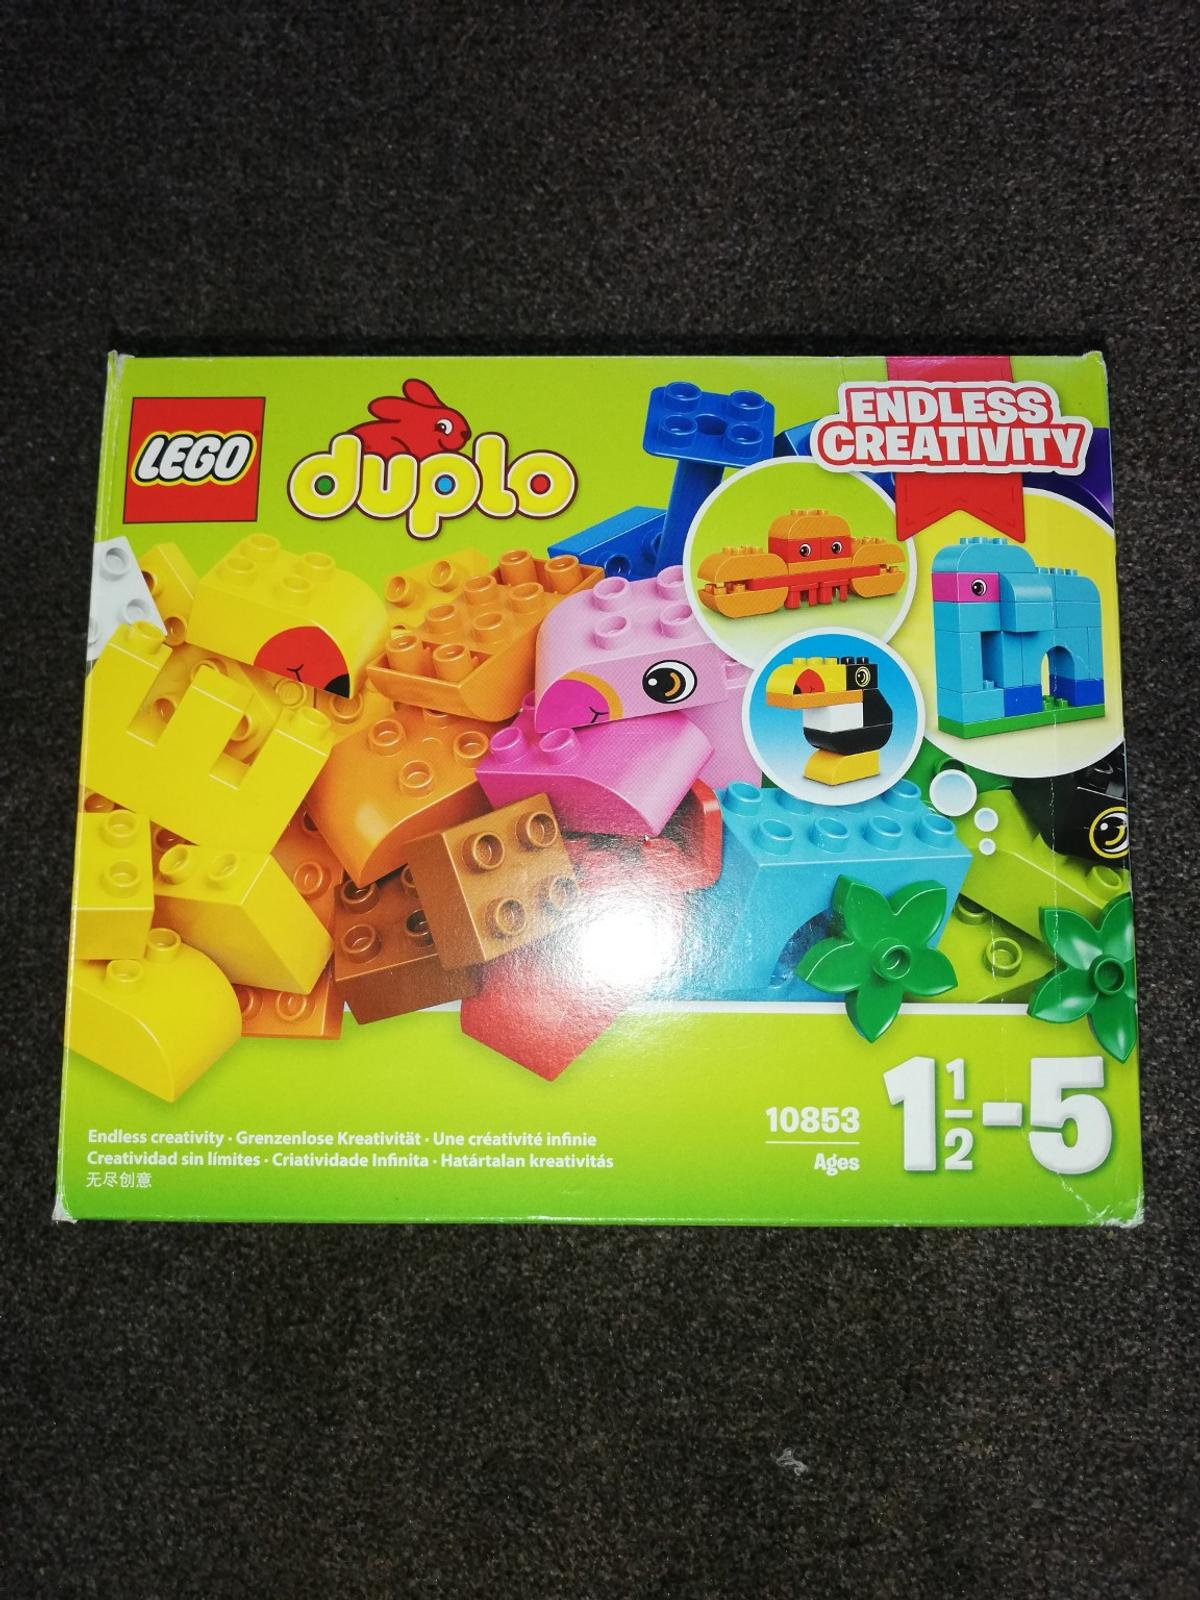 Duplo set. Very good condition. All pieces are there. Also includes some cards to help build the different animals.